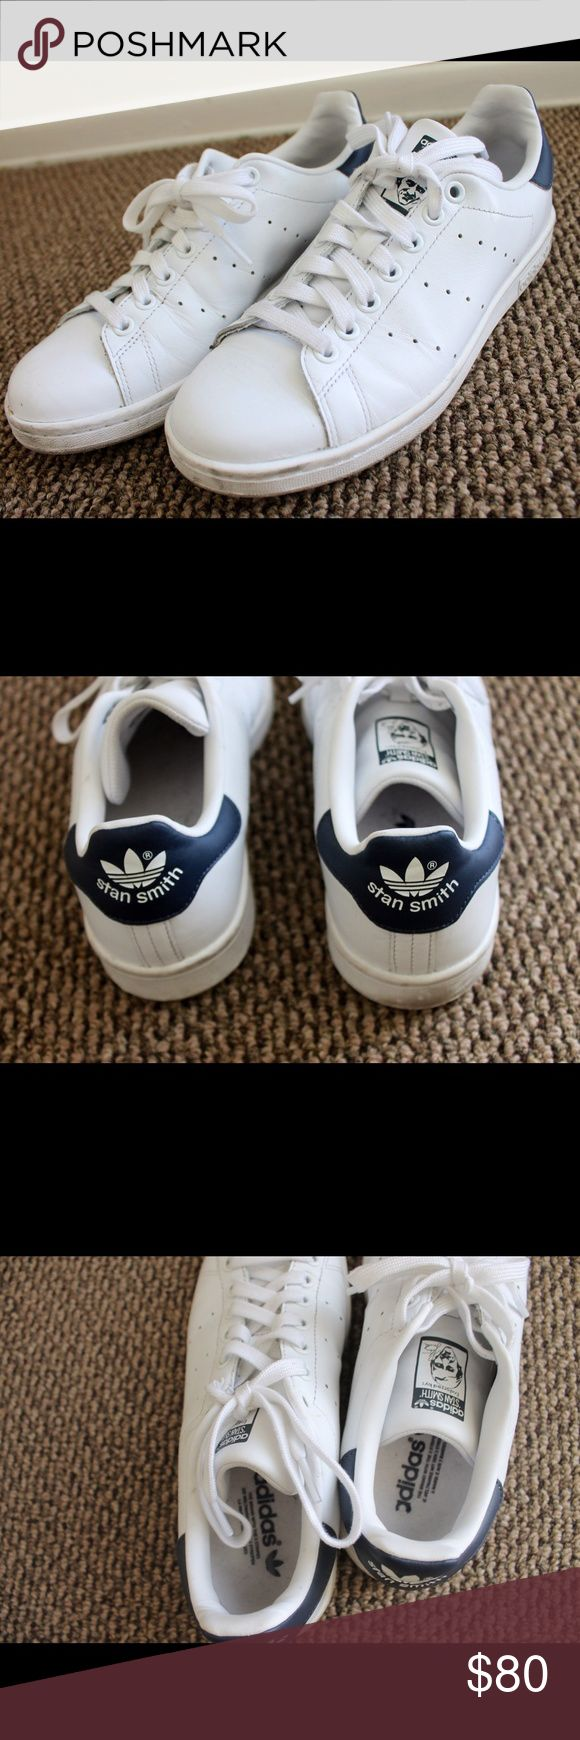 Adidas Stan Smith Navy details. Very lightly worn. Few marks on the rubber sole that would probably come out. Size 7 men's so would fit women 8.5 best Adidas Shoes